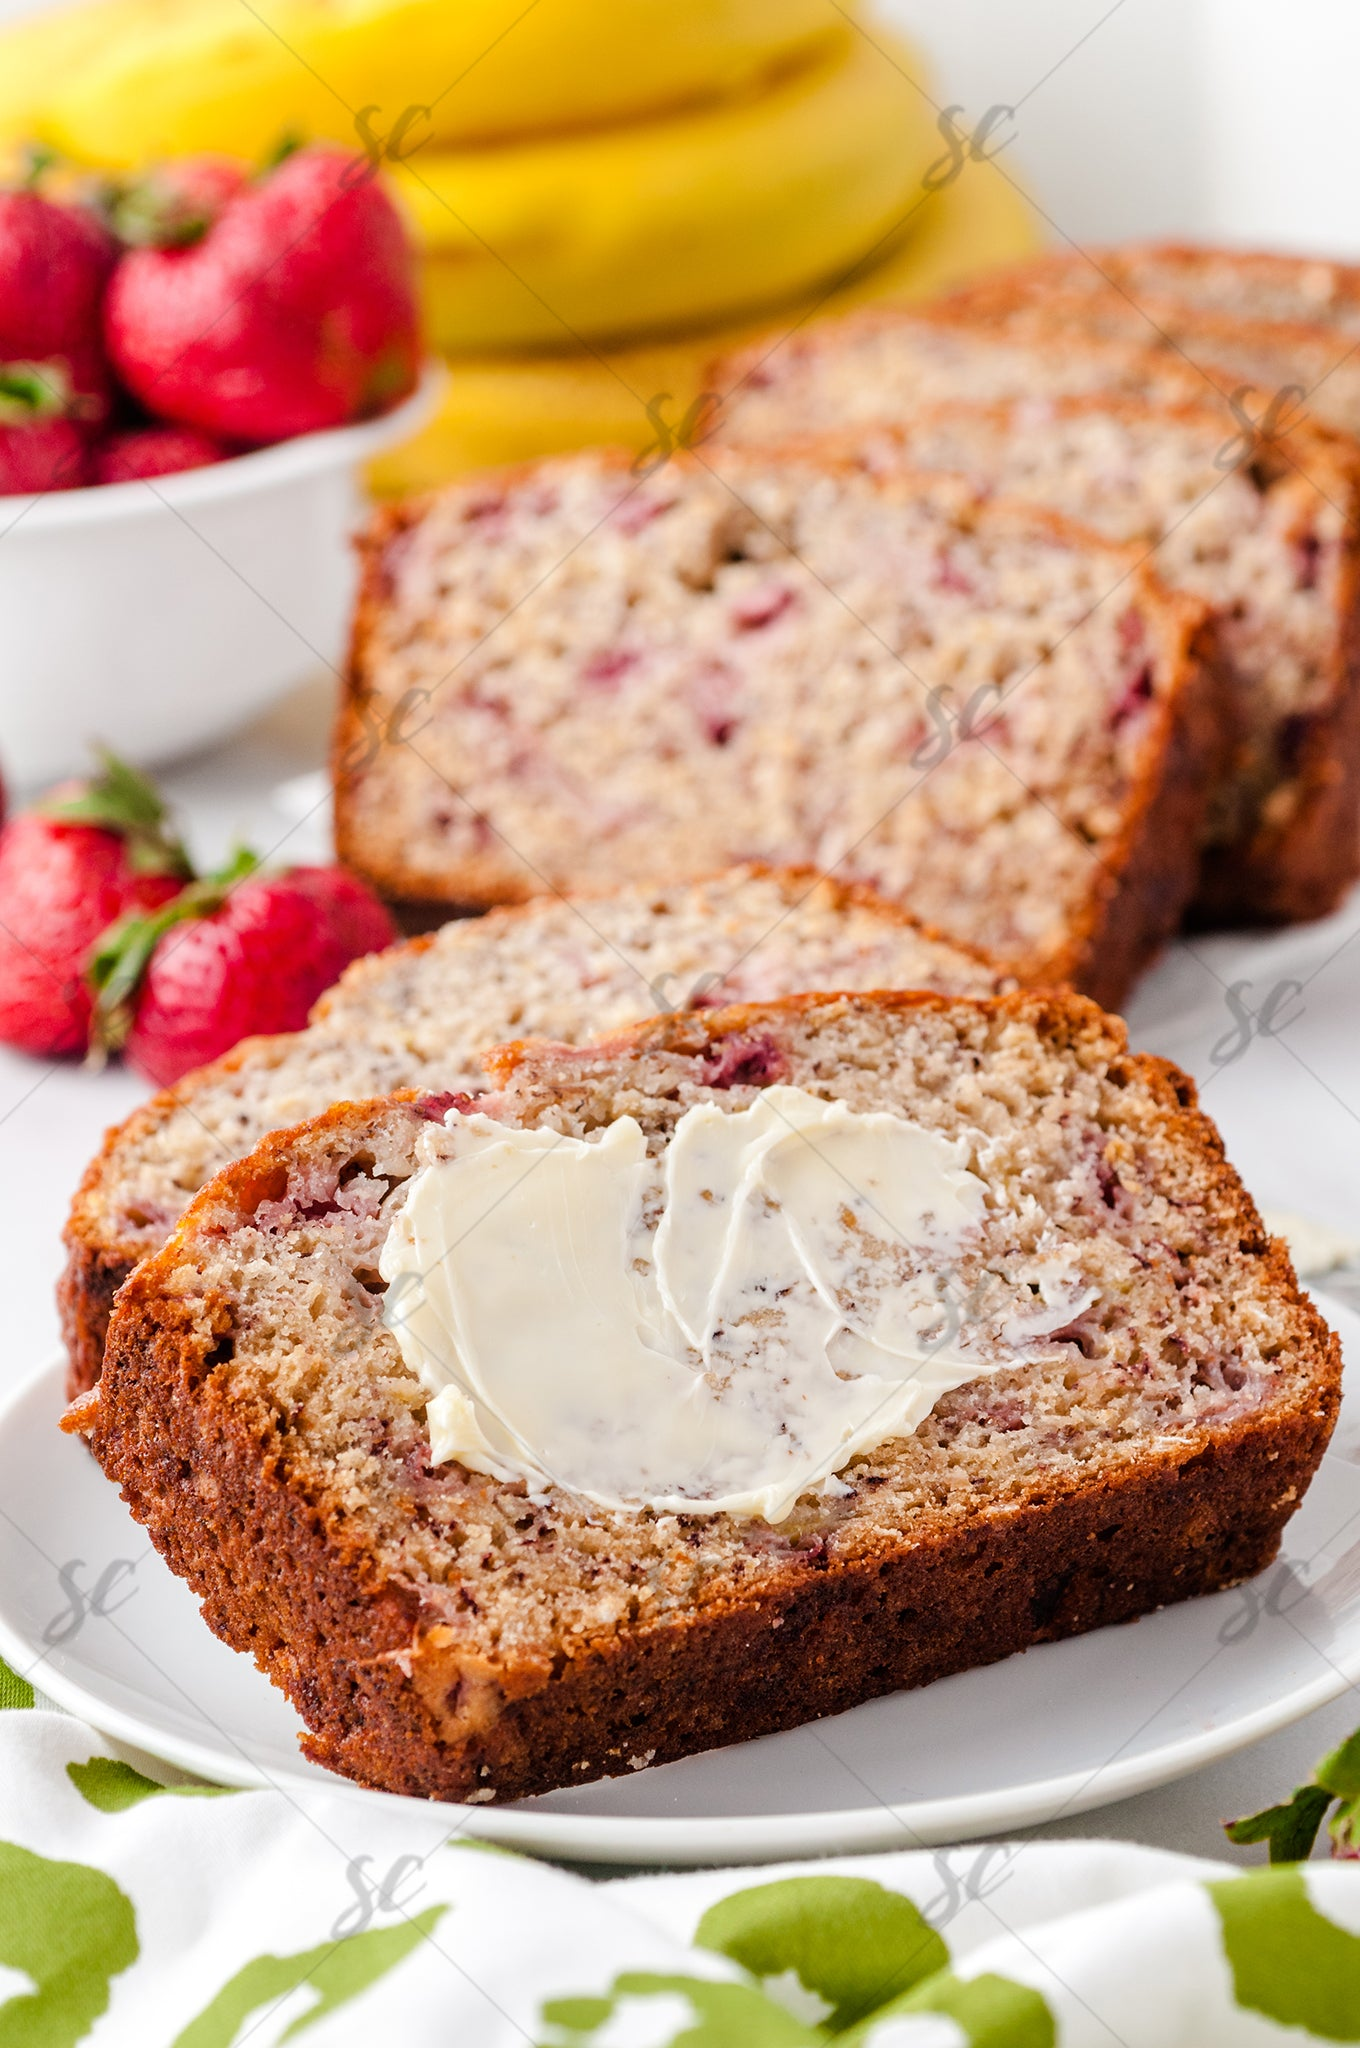 Strawberry Banana Bread - EXCLUSIVE